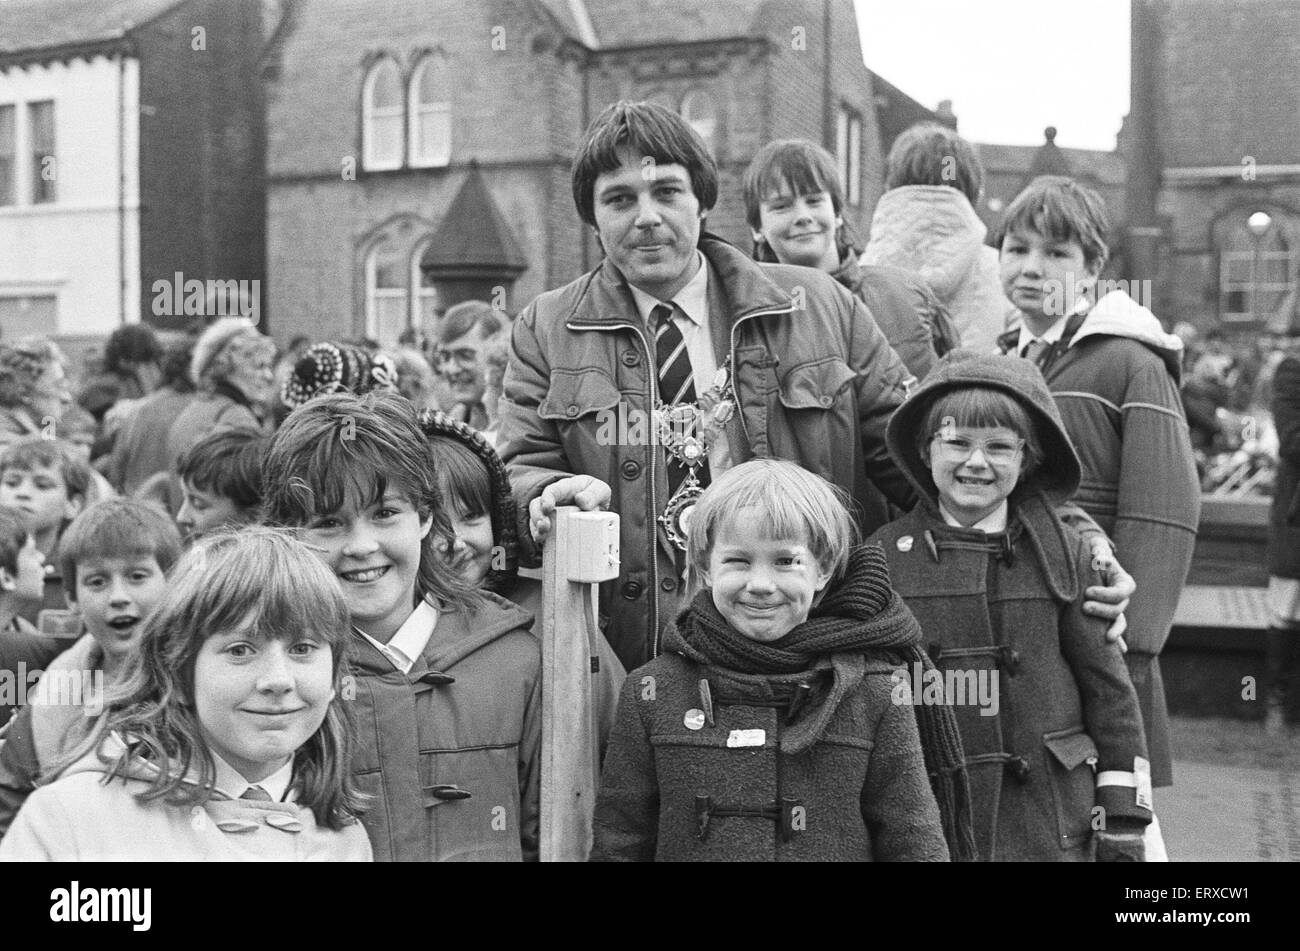 Meltham Christmas Lights turn on, Children of Meltham and Helme School. 10th December 1985. - Stock Image